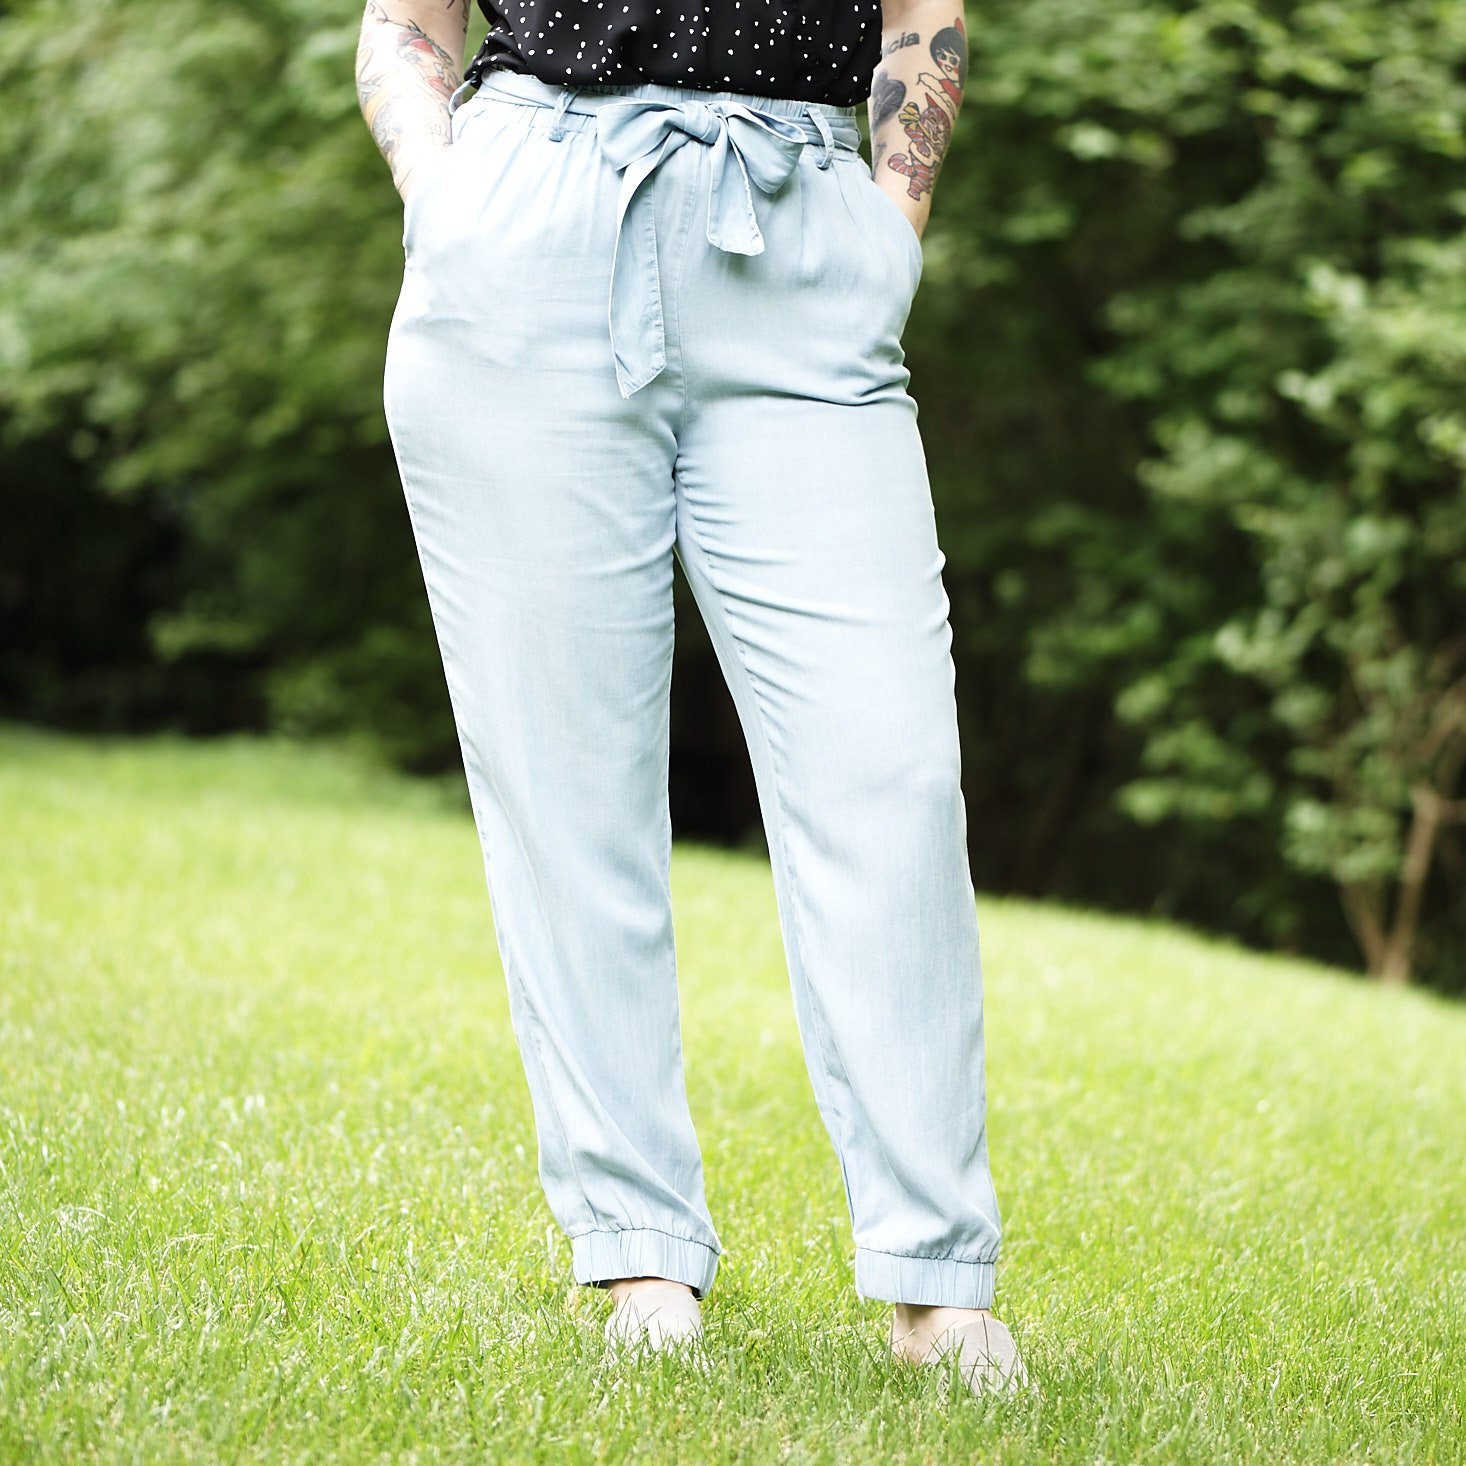 Marne wearing Mustard Seed Light Blue Chambray Jogger Pants outside